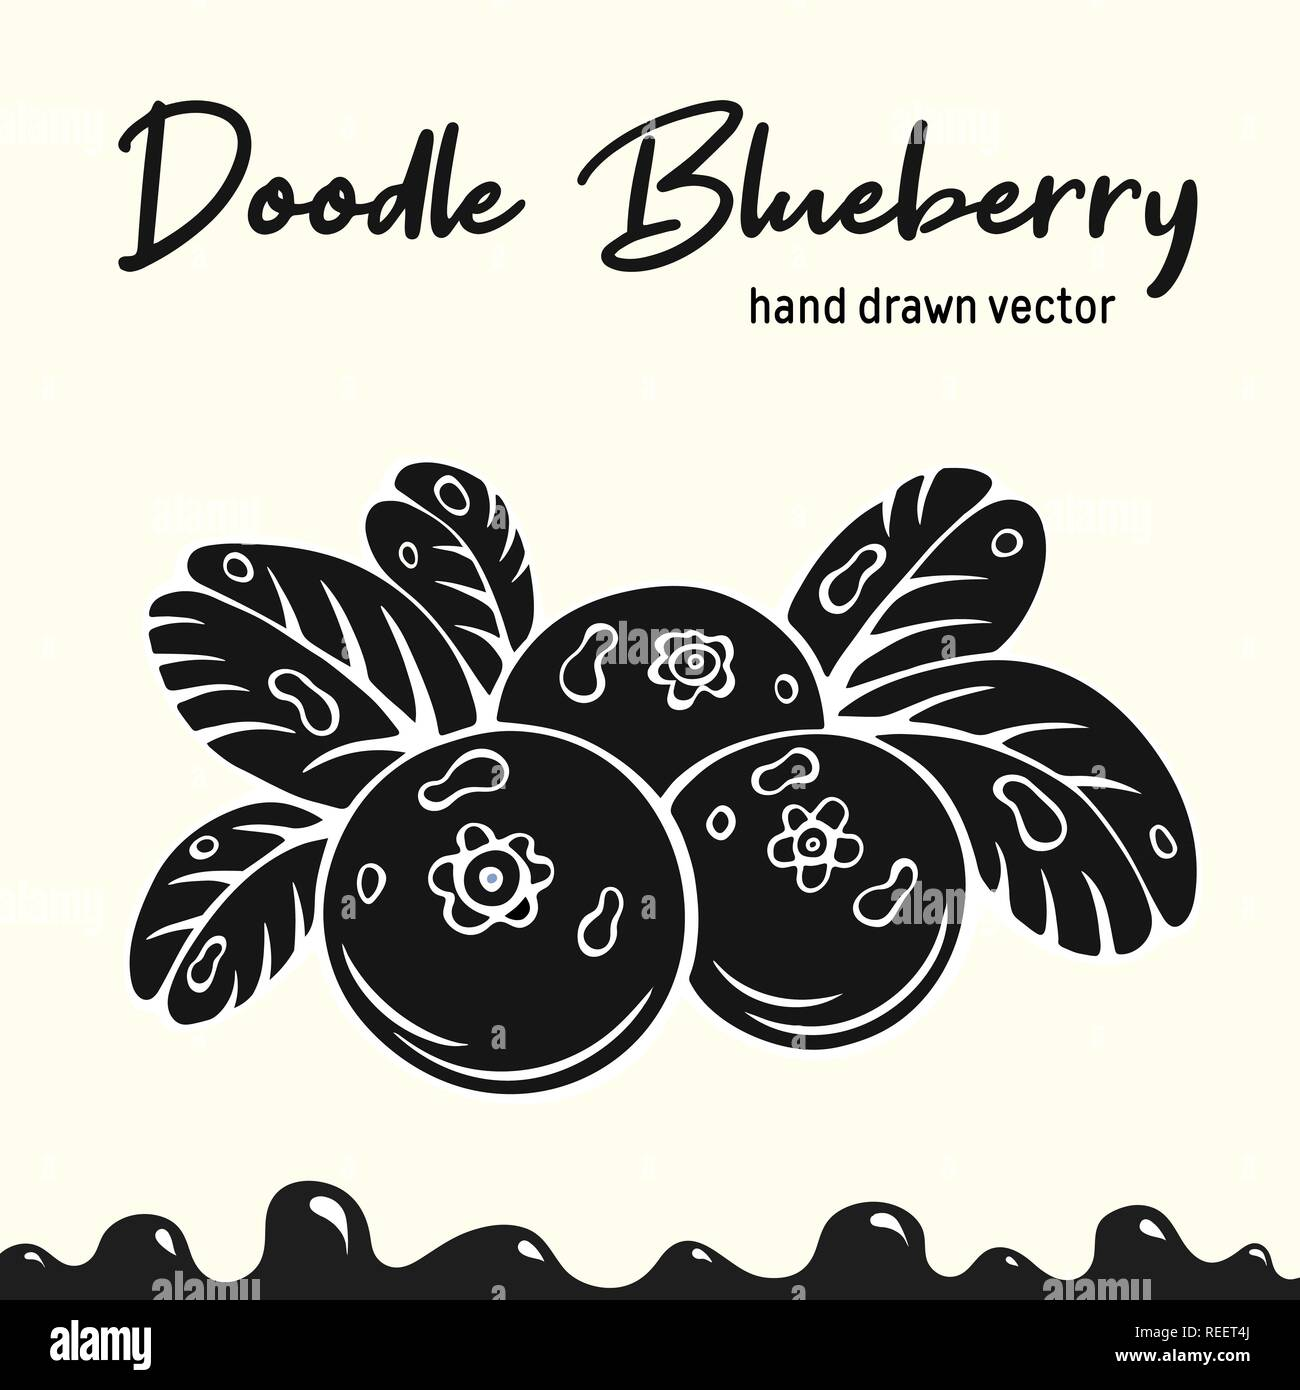 Blueberry vector illustration, berries images. Doodle Blueberry silhouette vector illustration. Blueberry berries images for icon, menu, package design. Black color vector berries images of blueberry. - Stock Vector